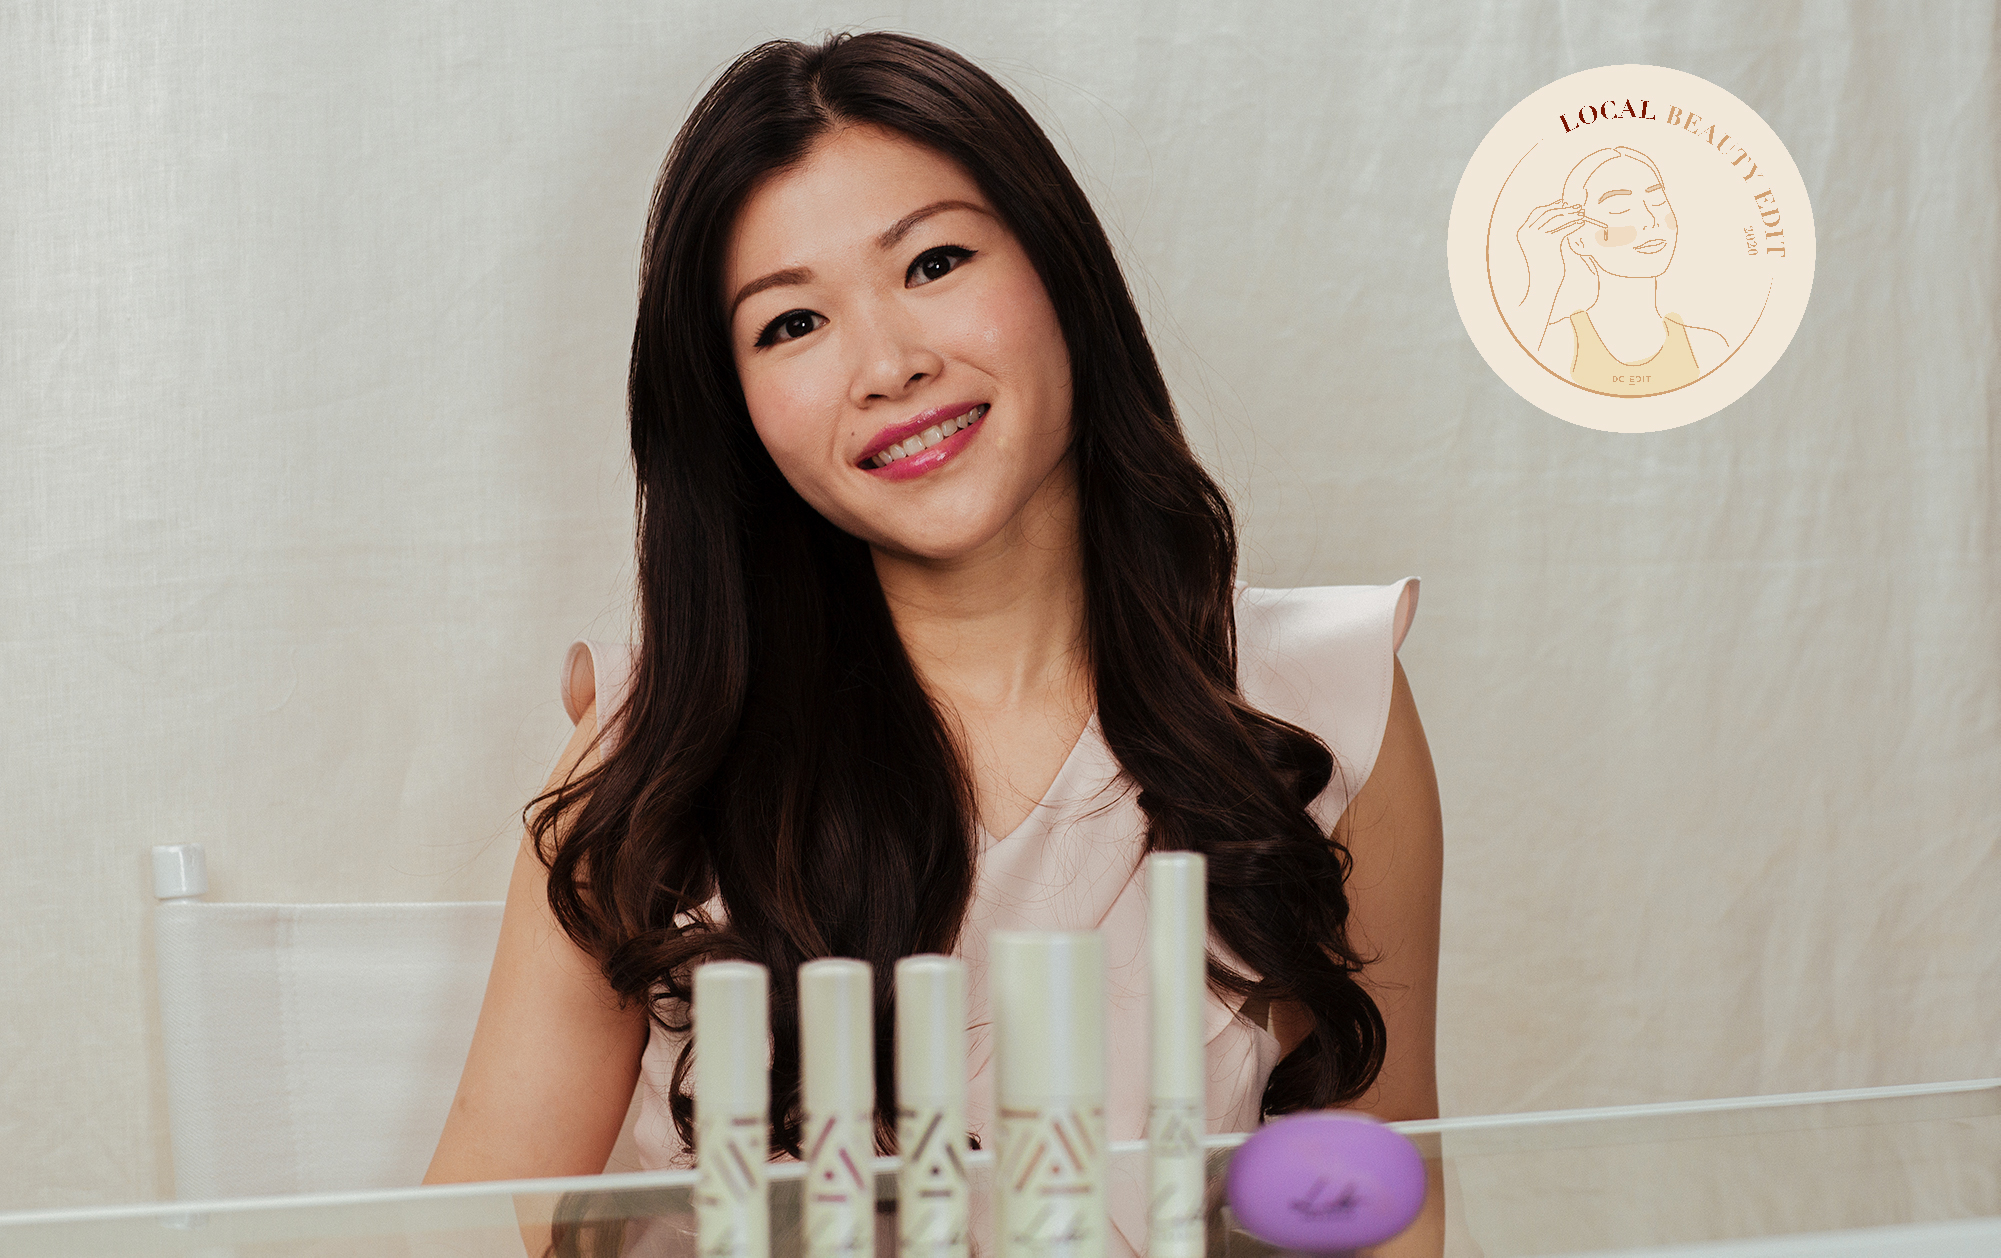 Makeup & Confidence: Talking Self-love With Liht Organics' Founder Nerissa Low